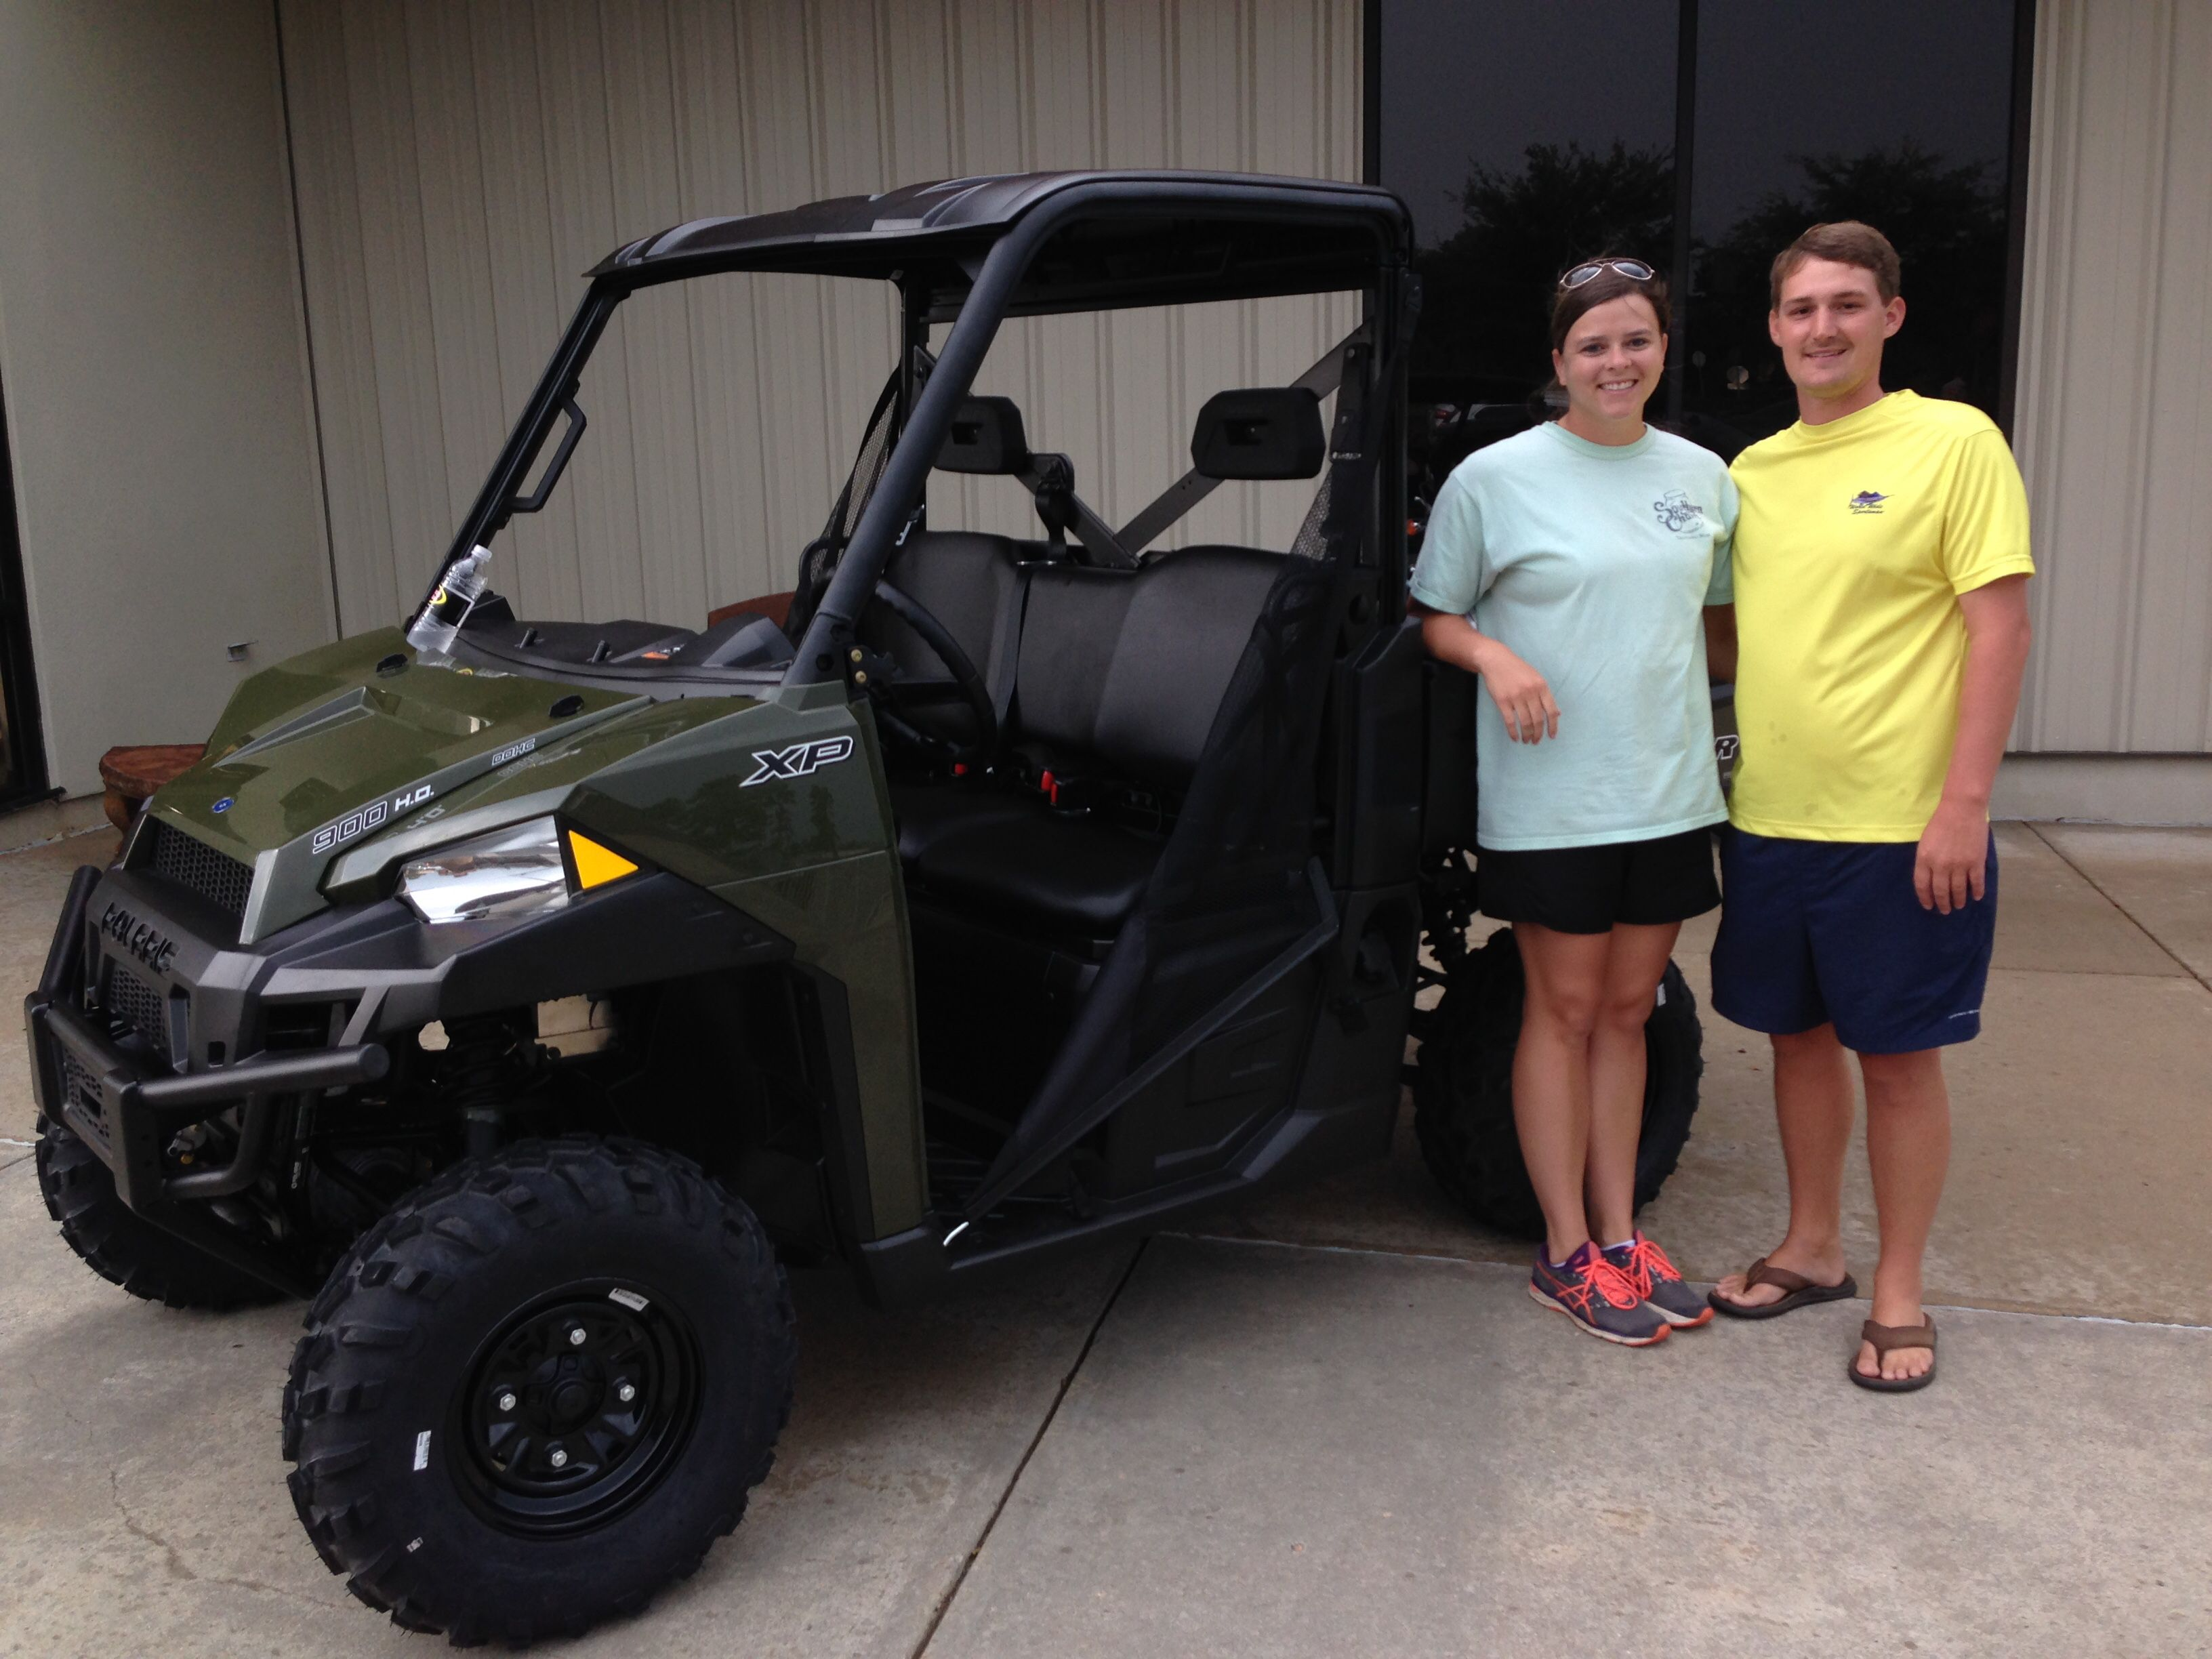 Congratulations to Kasey and Wyatt Barnhill from Spanish Fort, AL for purchasing a 2017 Polaris Ranger XP 900 at Hattiesburg Cycles.#polaris